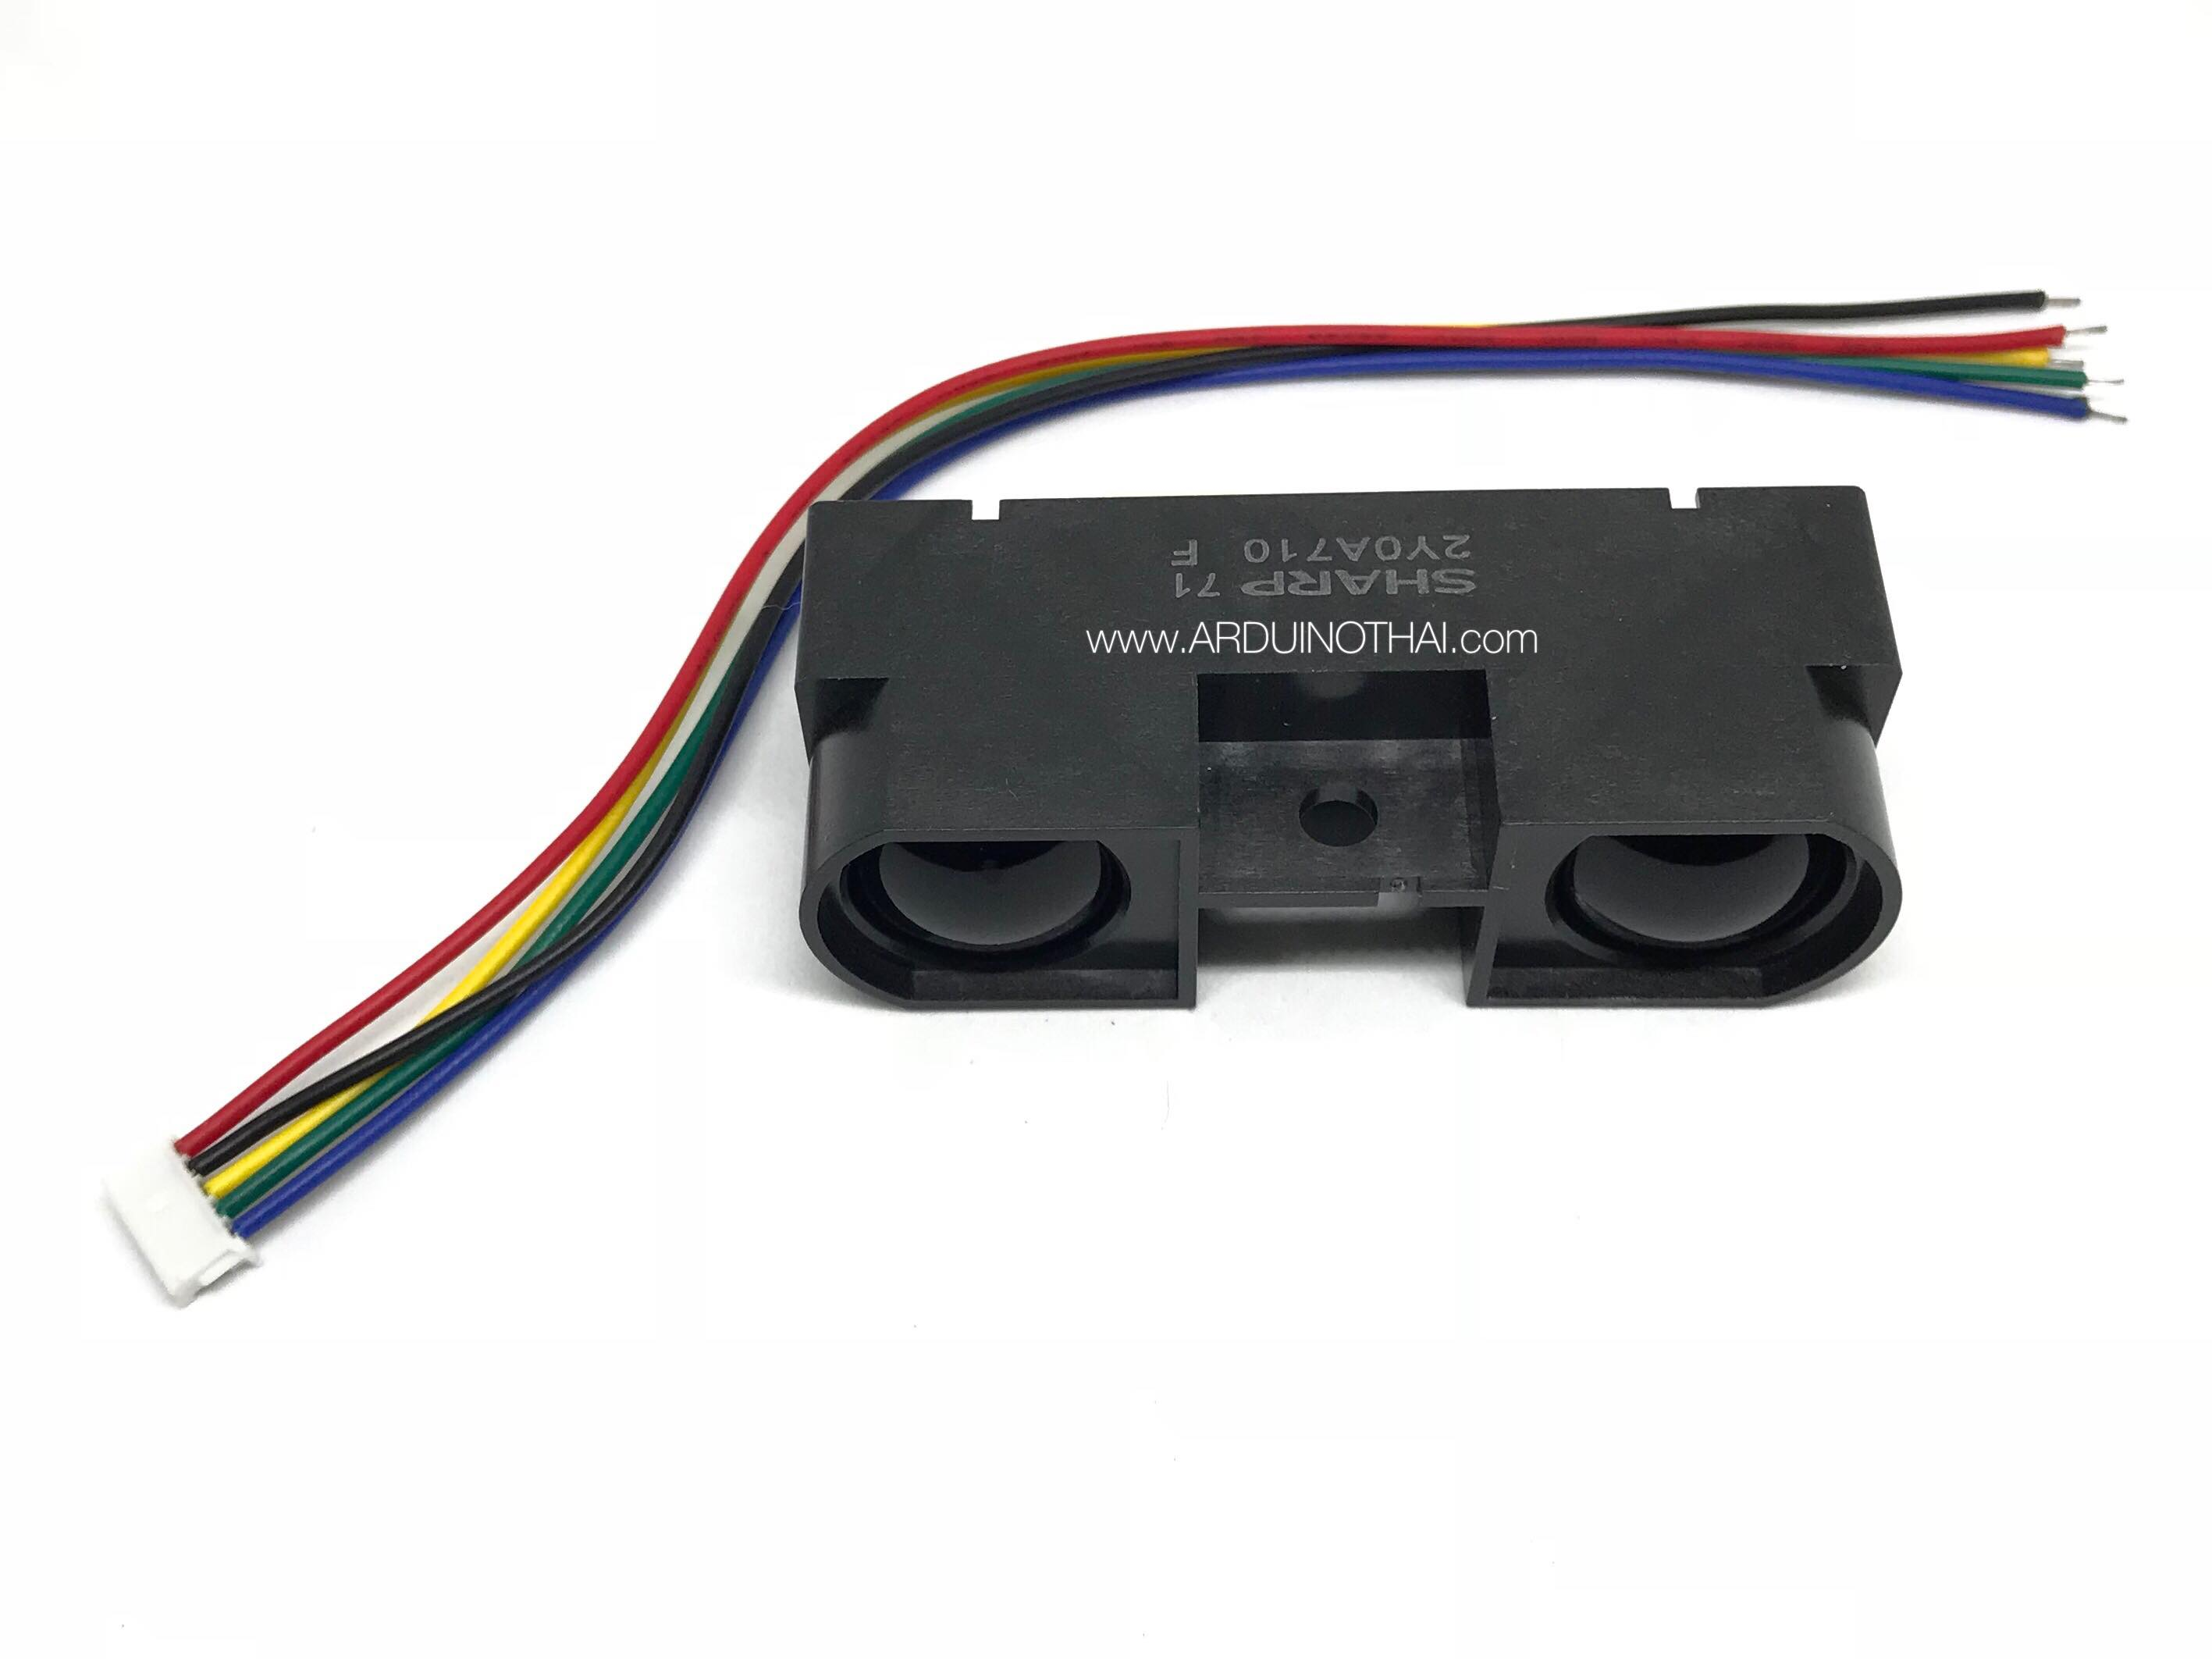 Sharp Infrared Distance Sensor 100-550CM